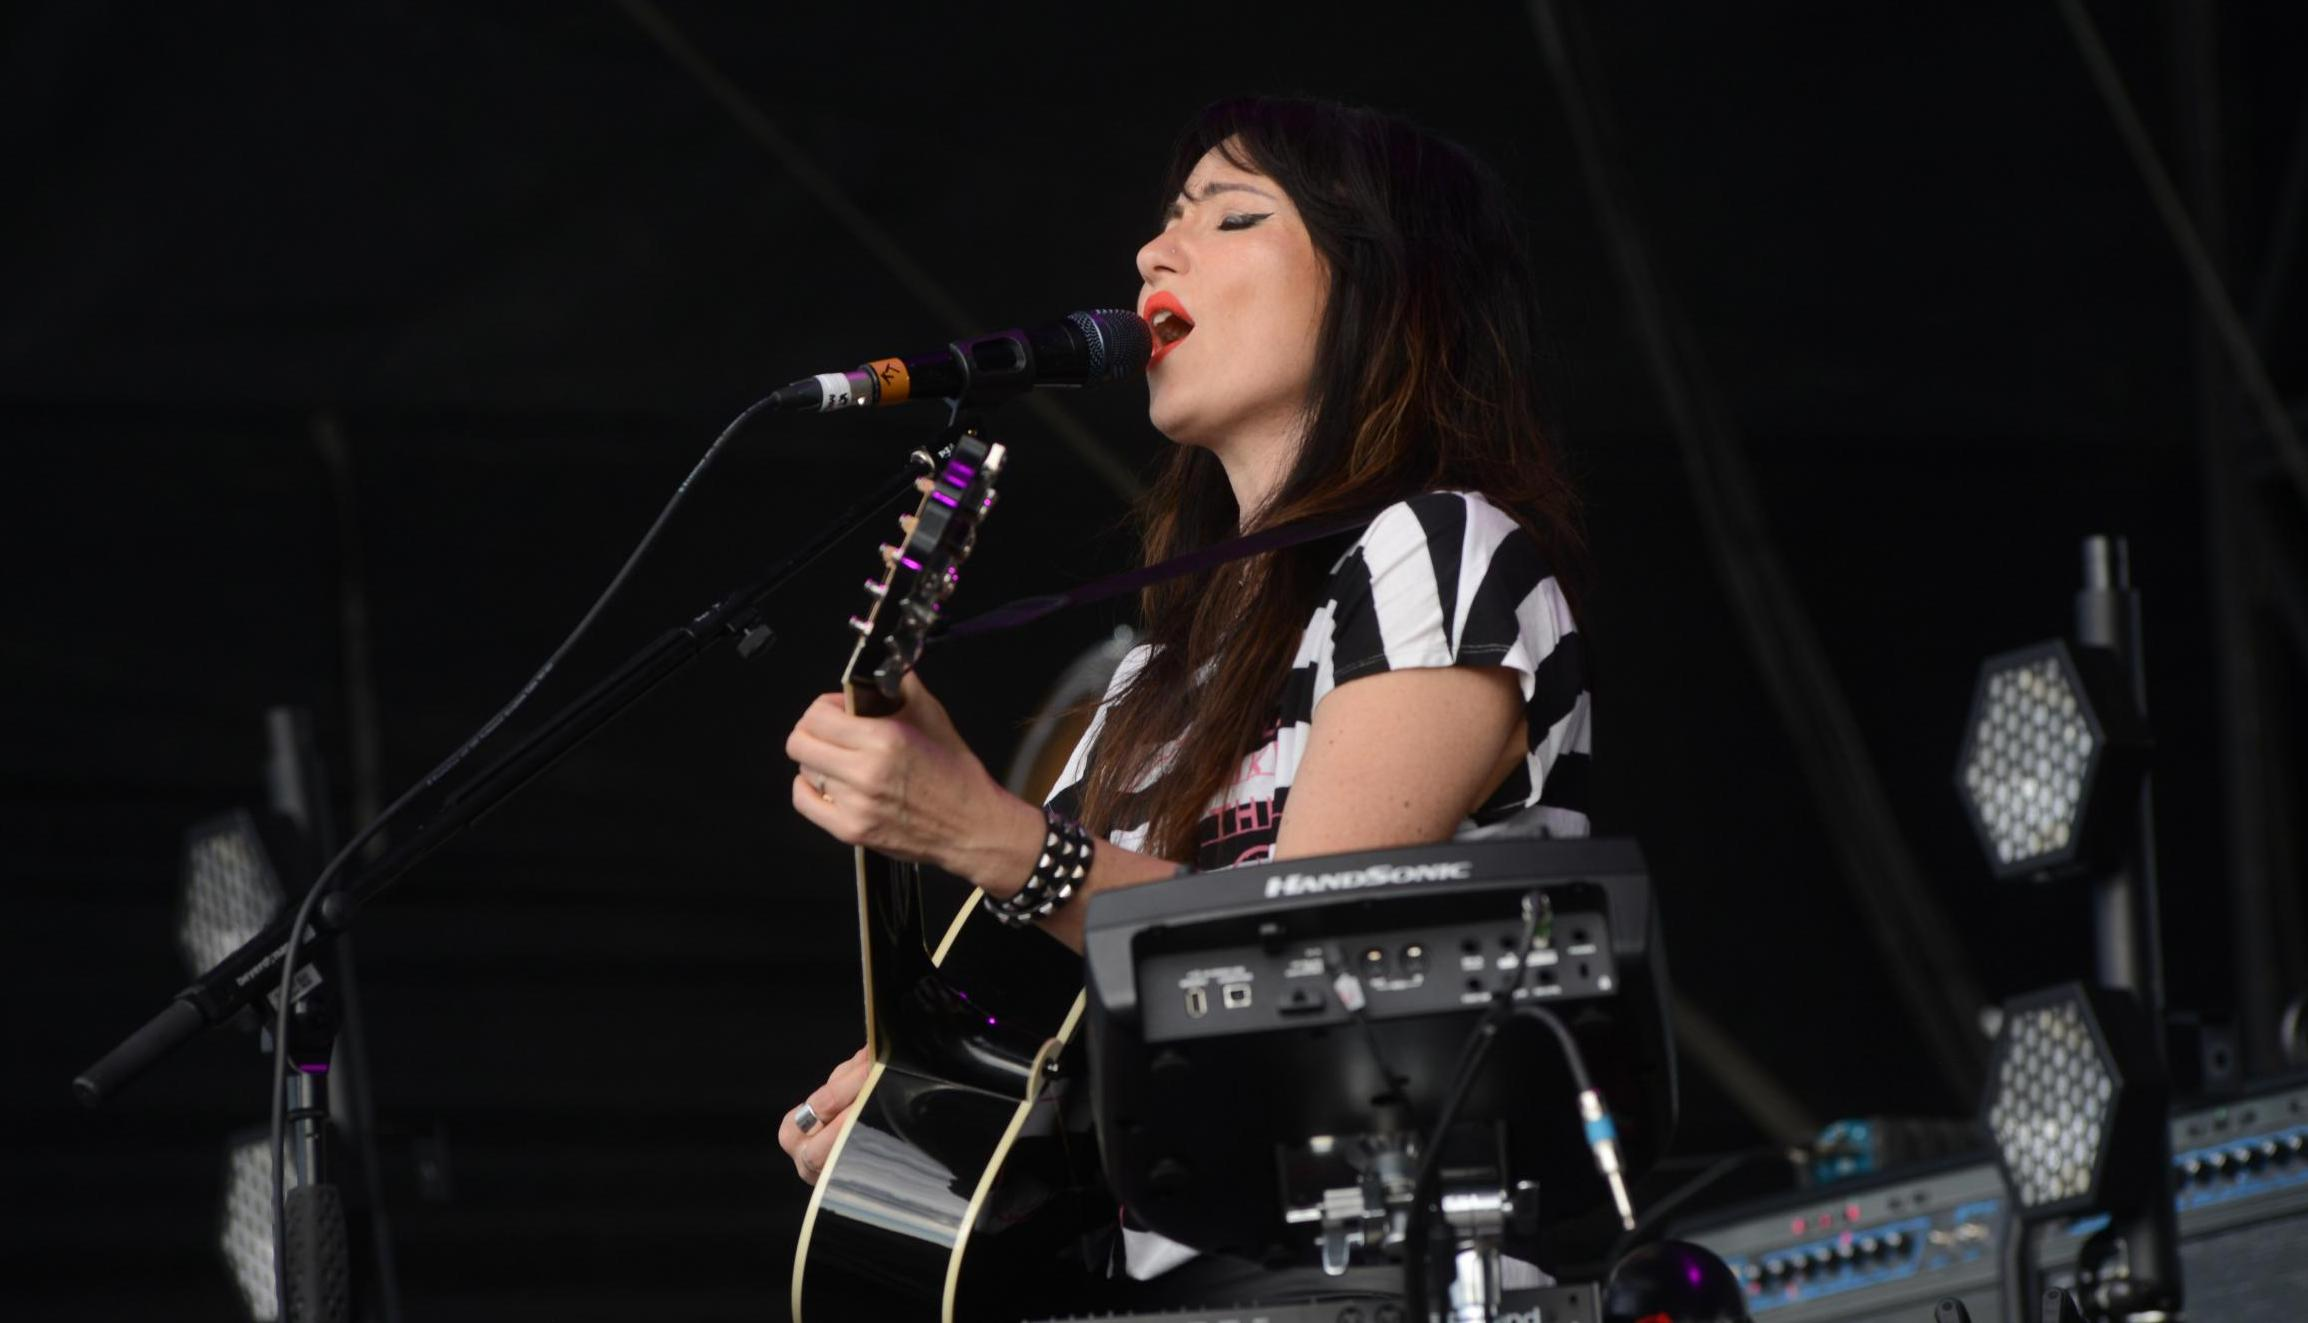 Free tuition at schools benefited Scottish musicians such as KT Tunstall